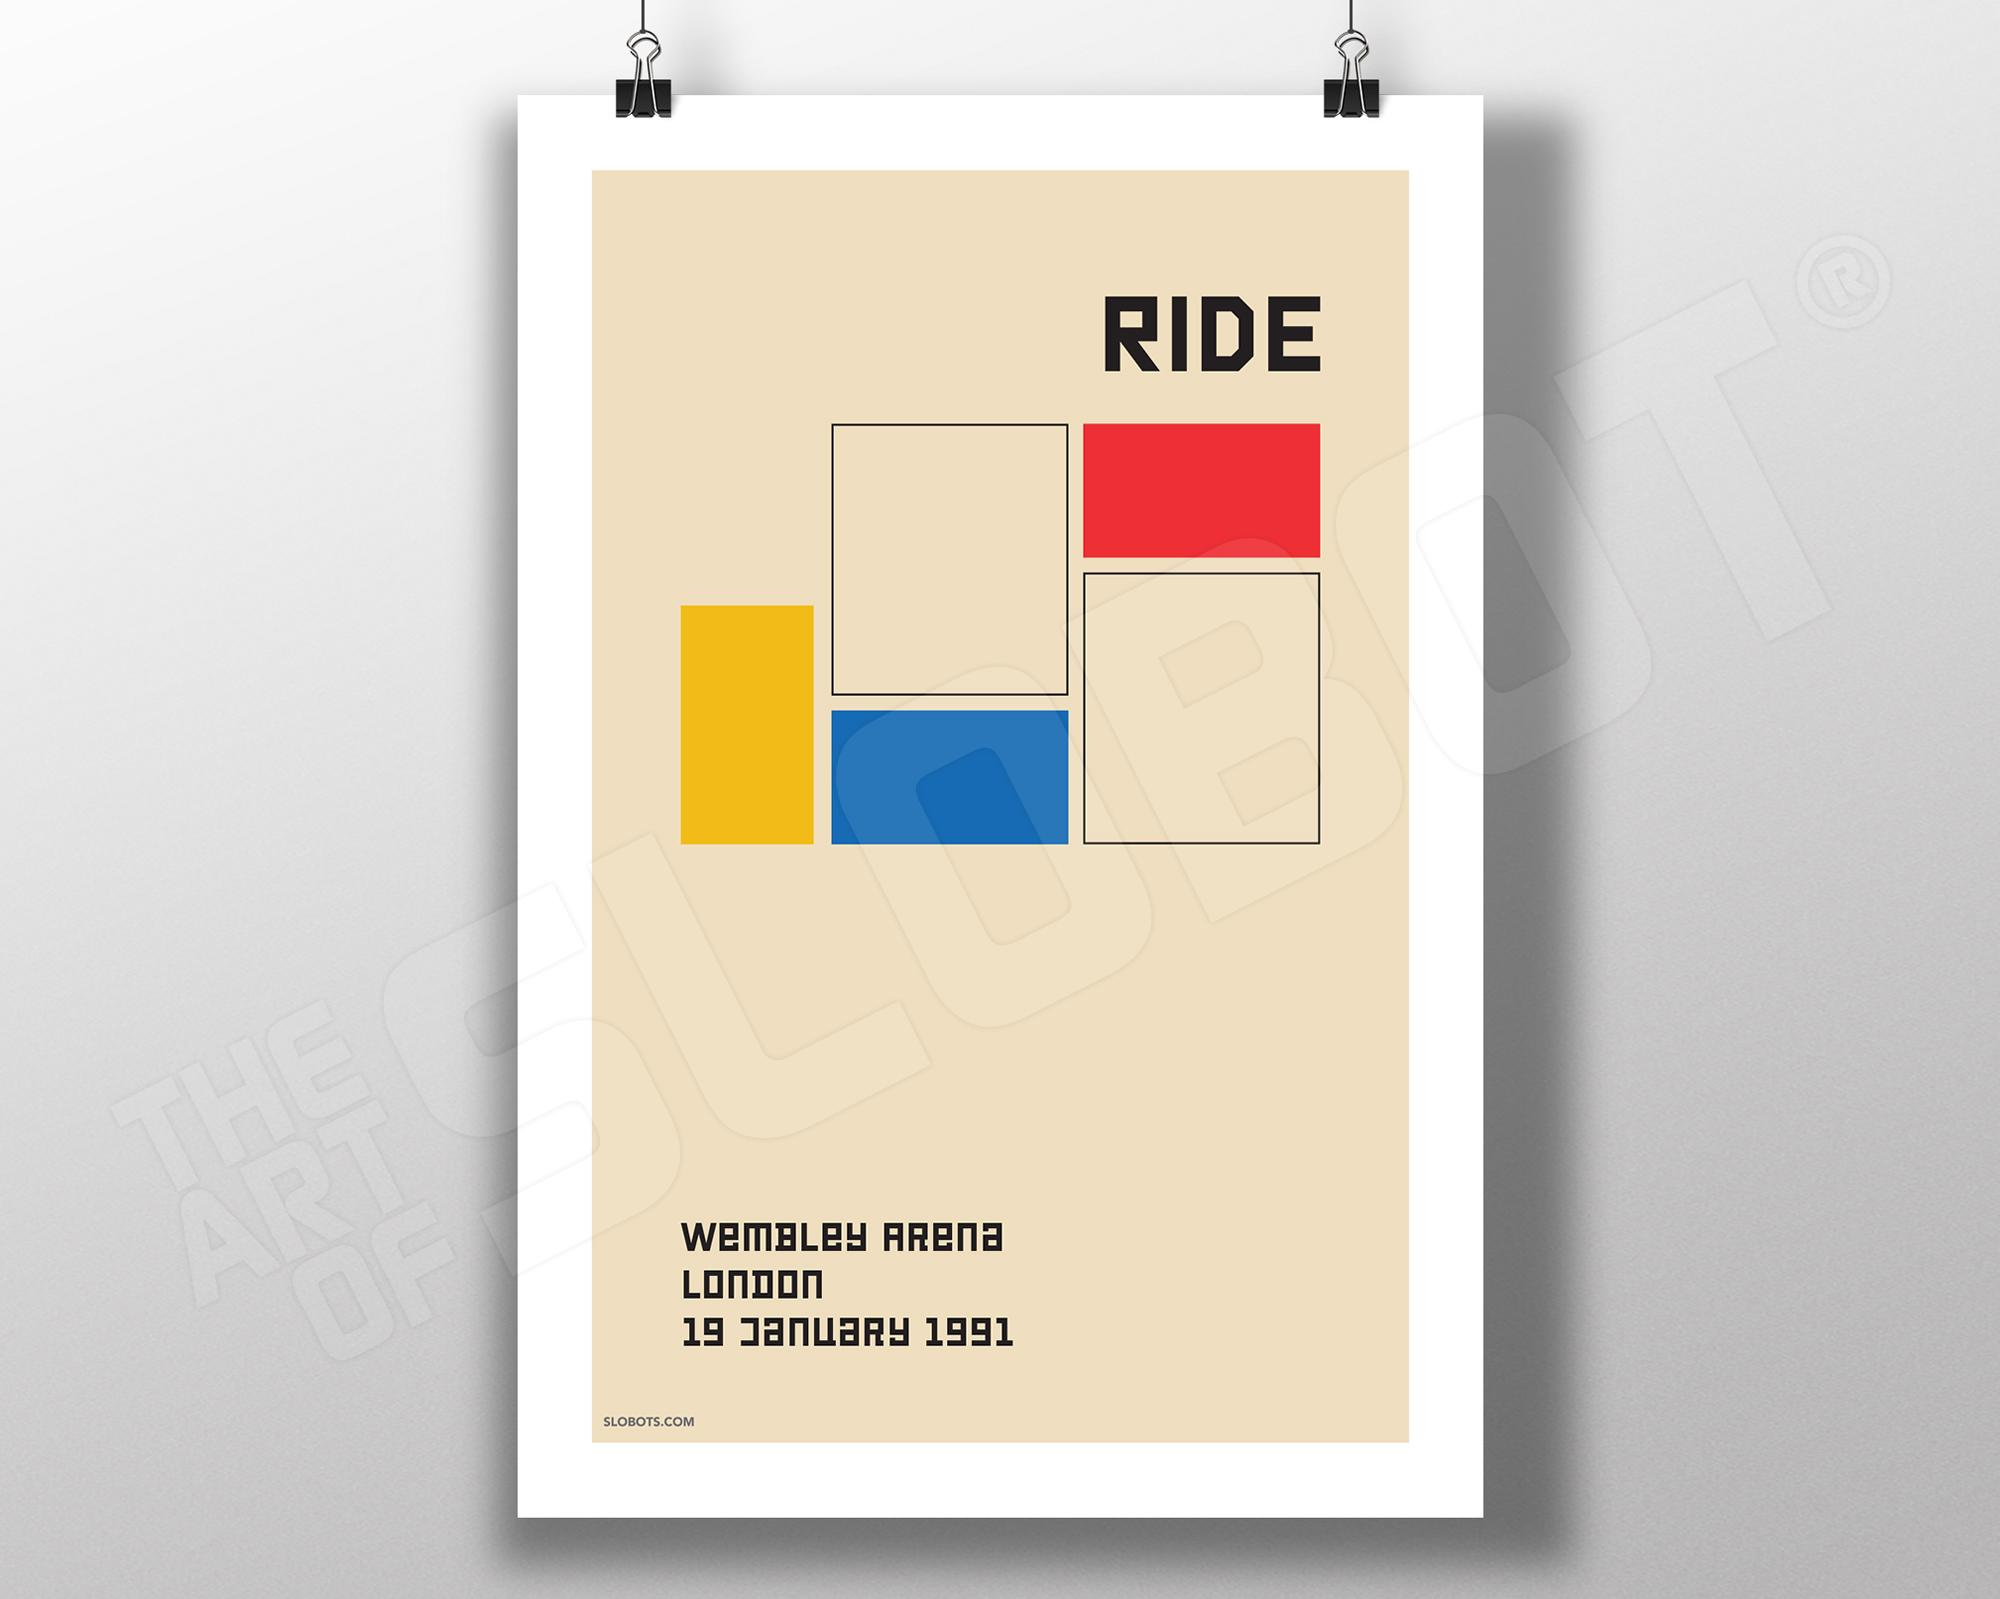 Mike Slobot Music Inspired Art - Ride Live in London 1991 in the style of the Bauhaus